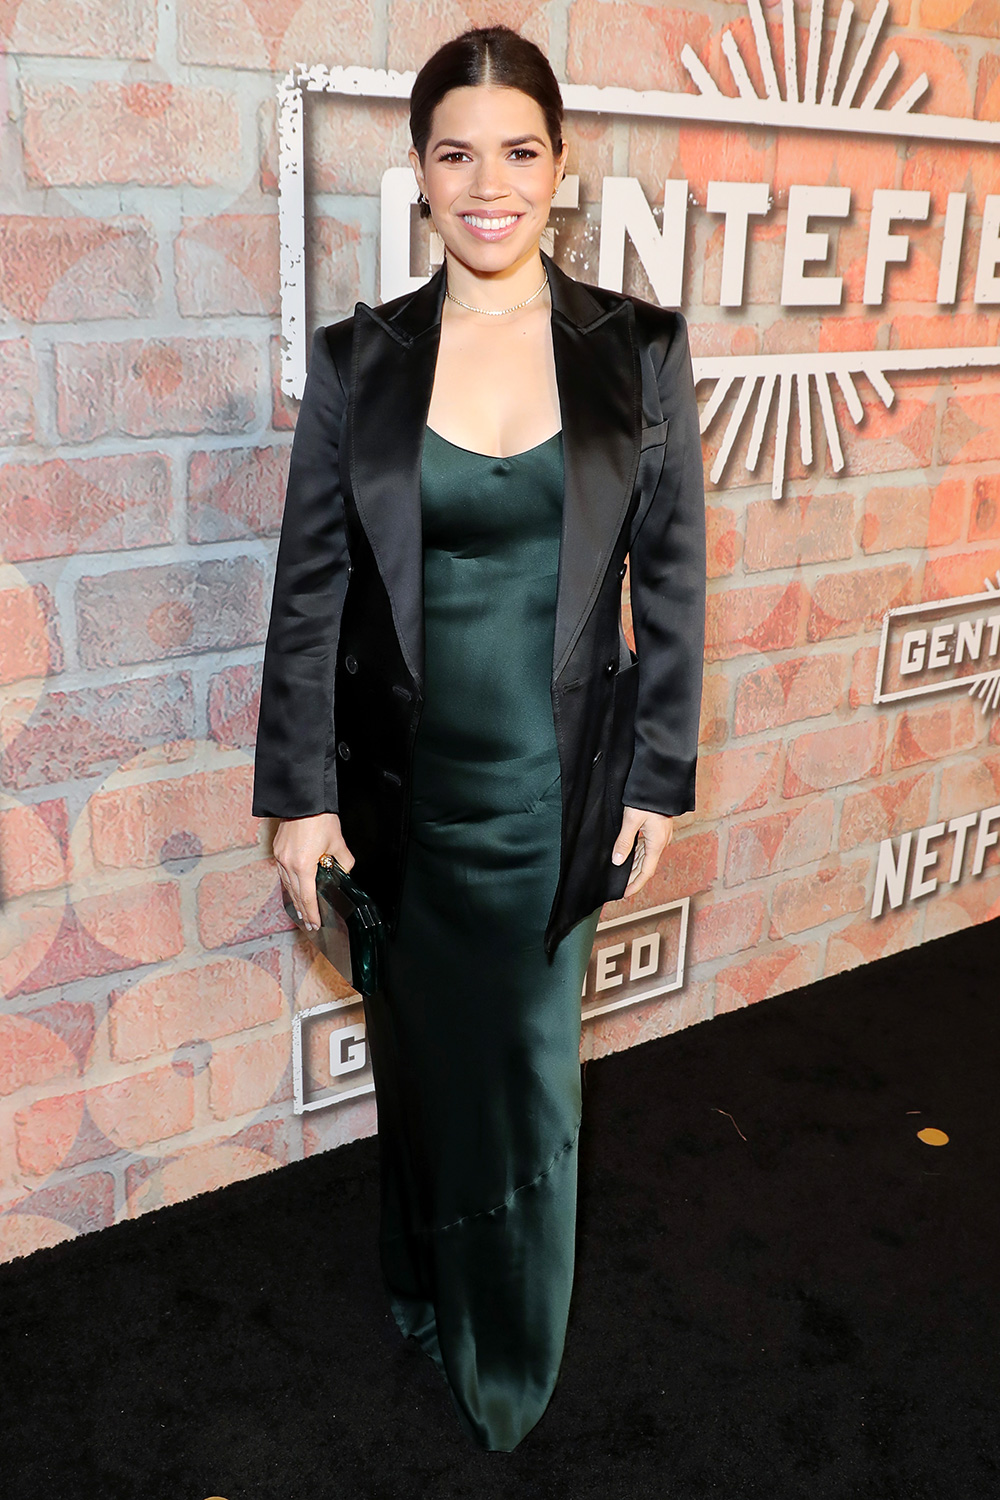 America Ferrera attends the premiere of Netflix's GENTIFIED Season 1 at Margo Albert Theatre on February 20, 2020 in Los Angeles, California